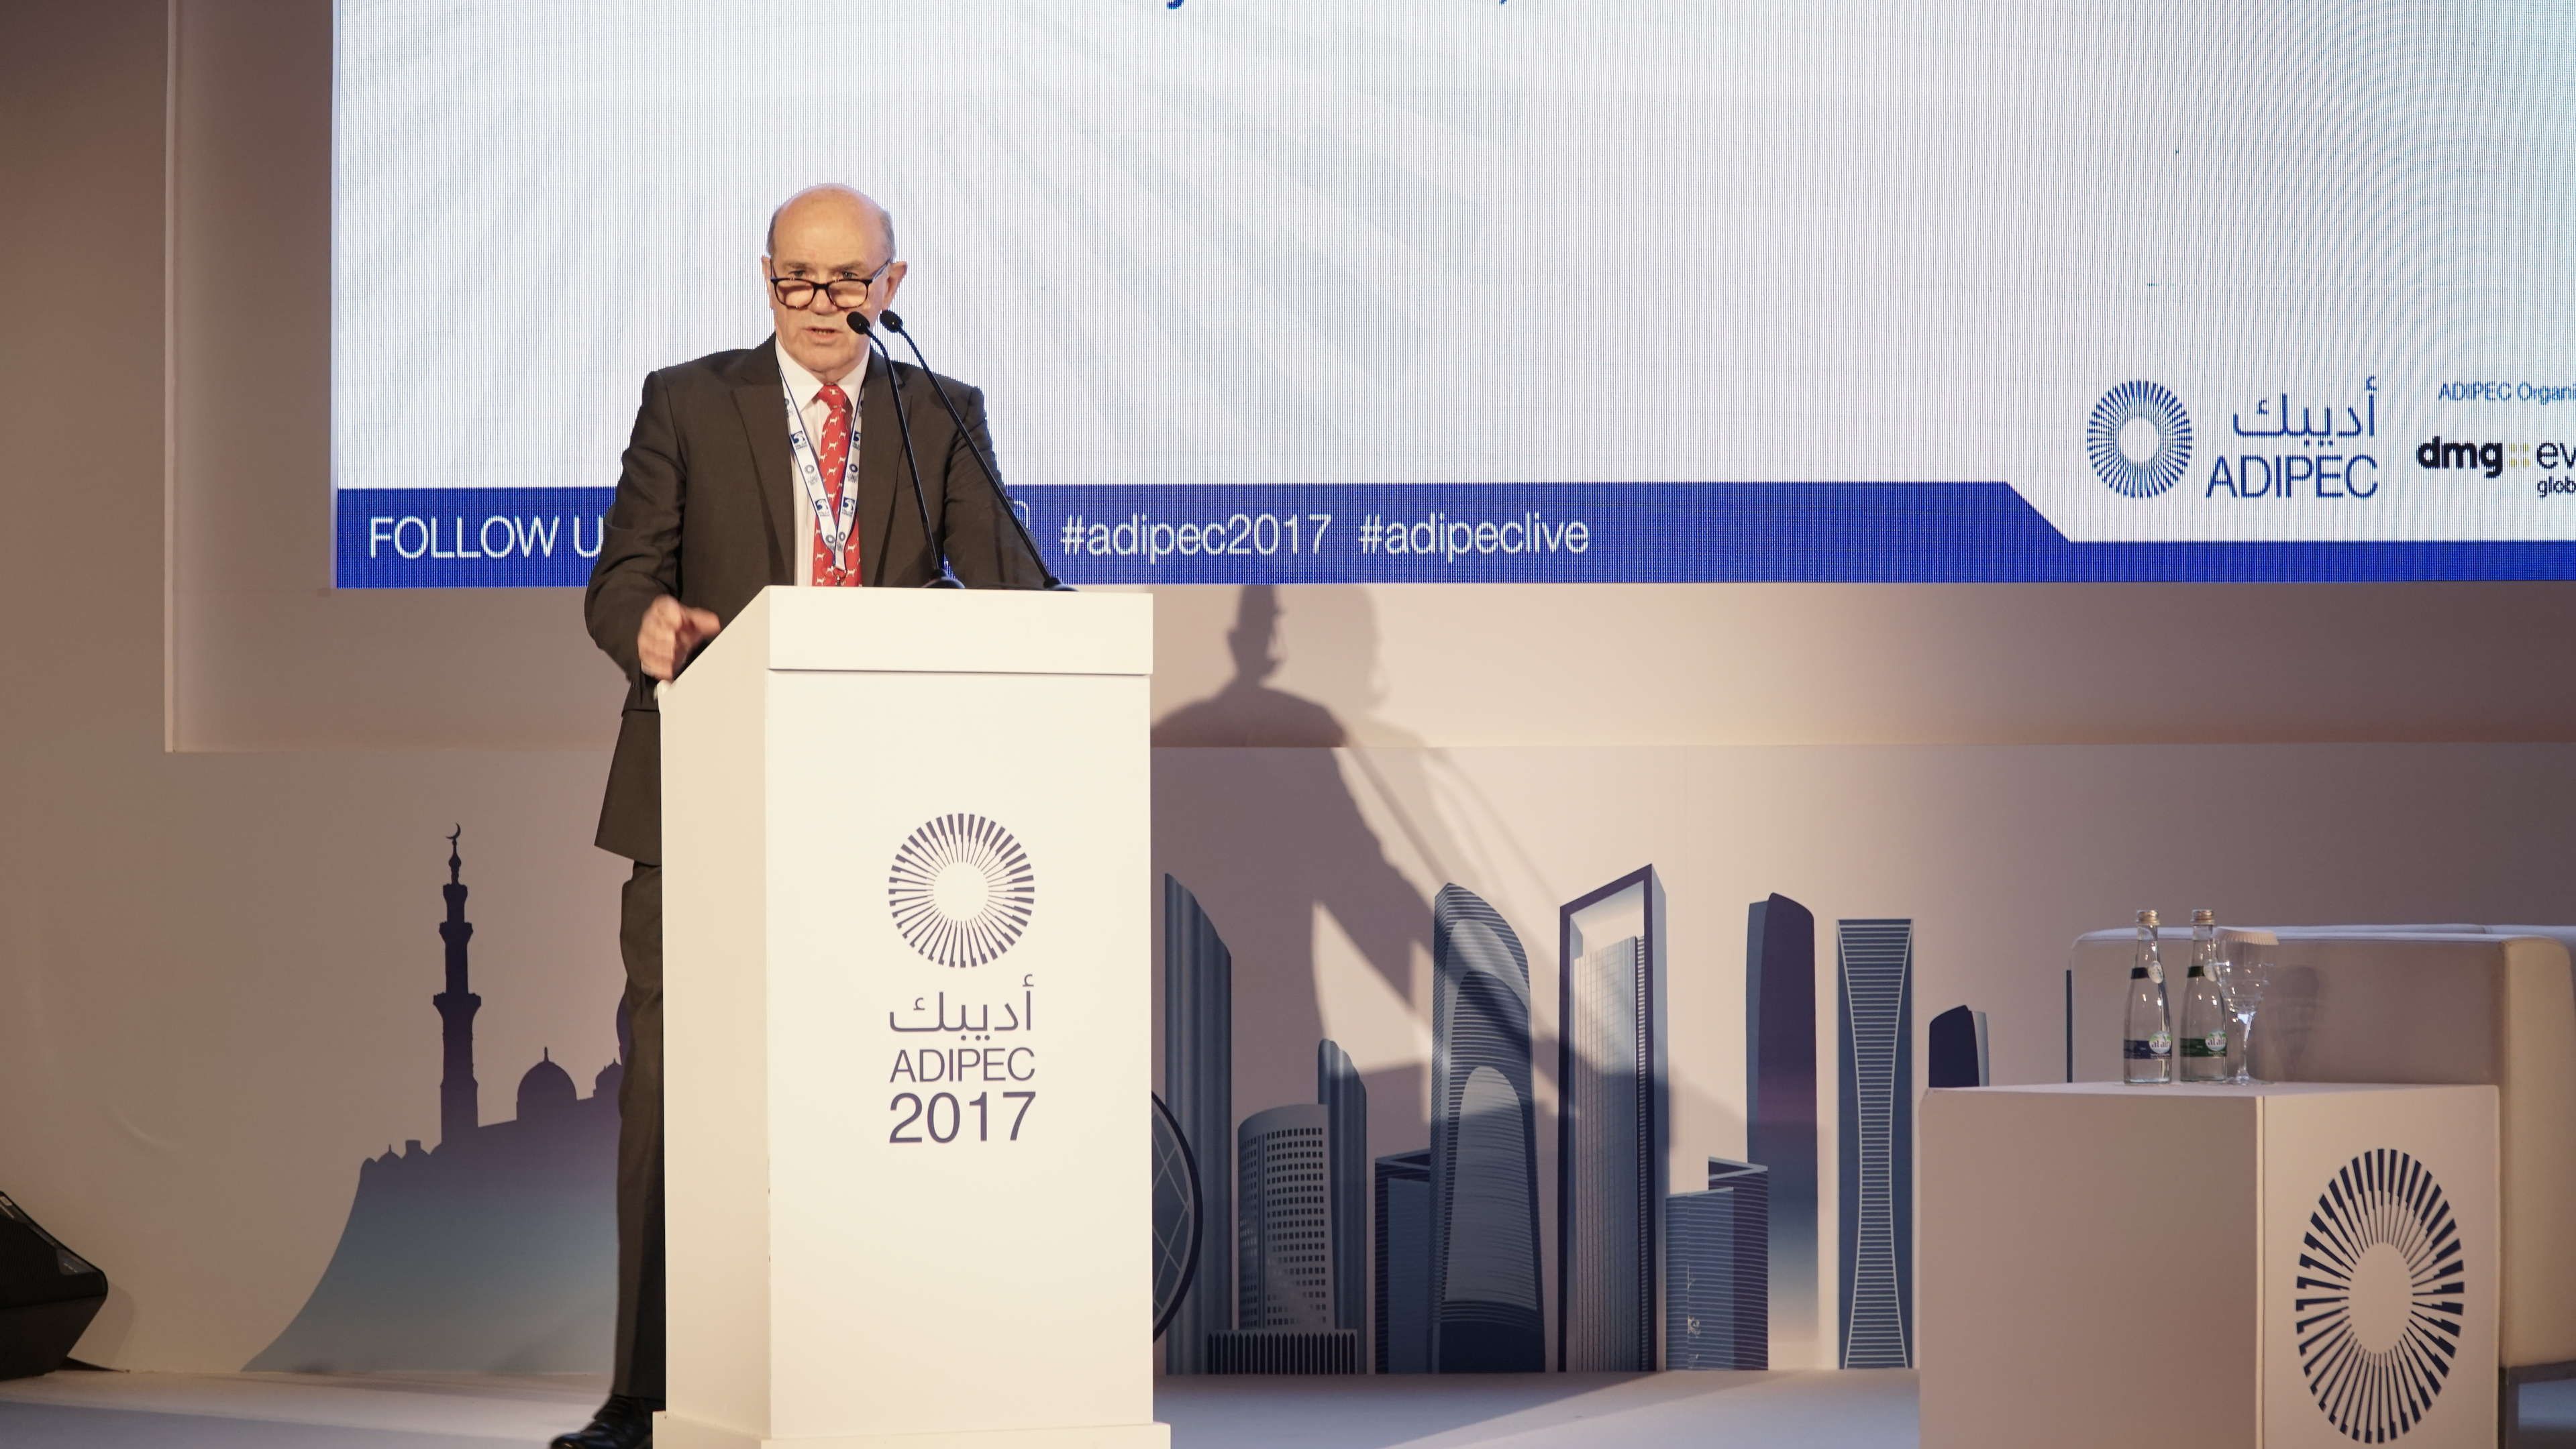 Sir Ronnie Flanagan delivering the keynote speech at the security in energy session at Adipec